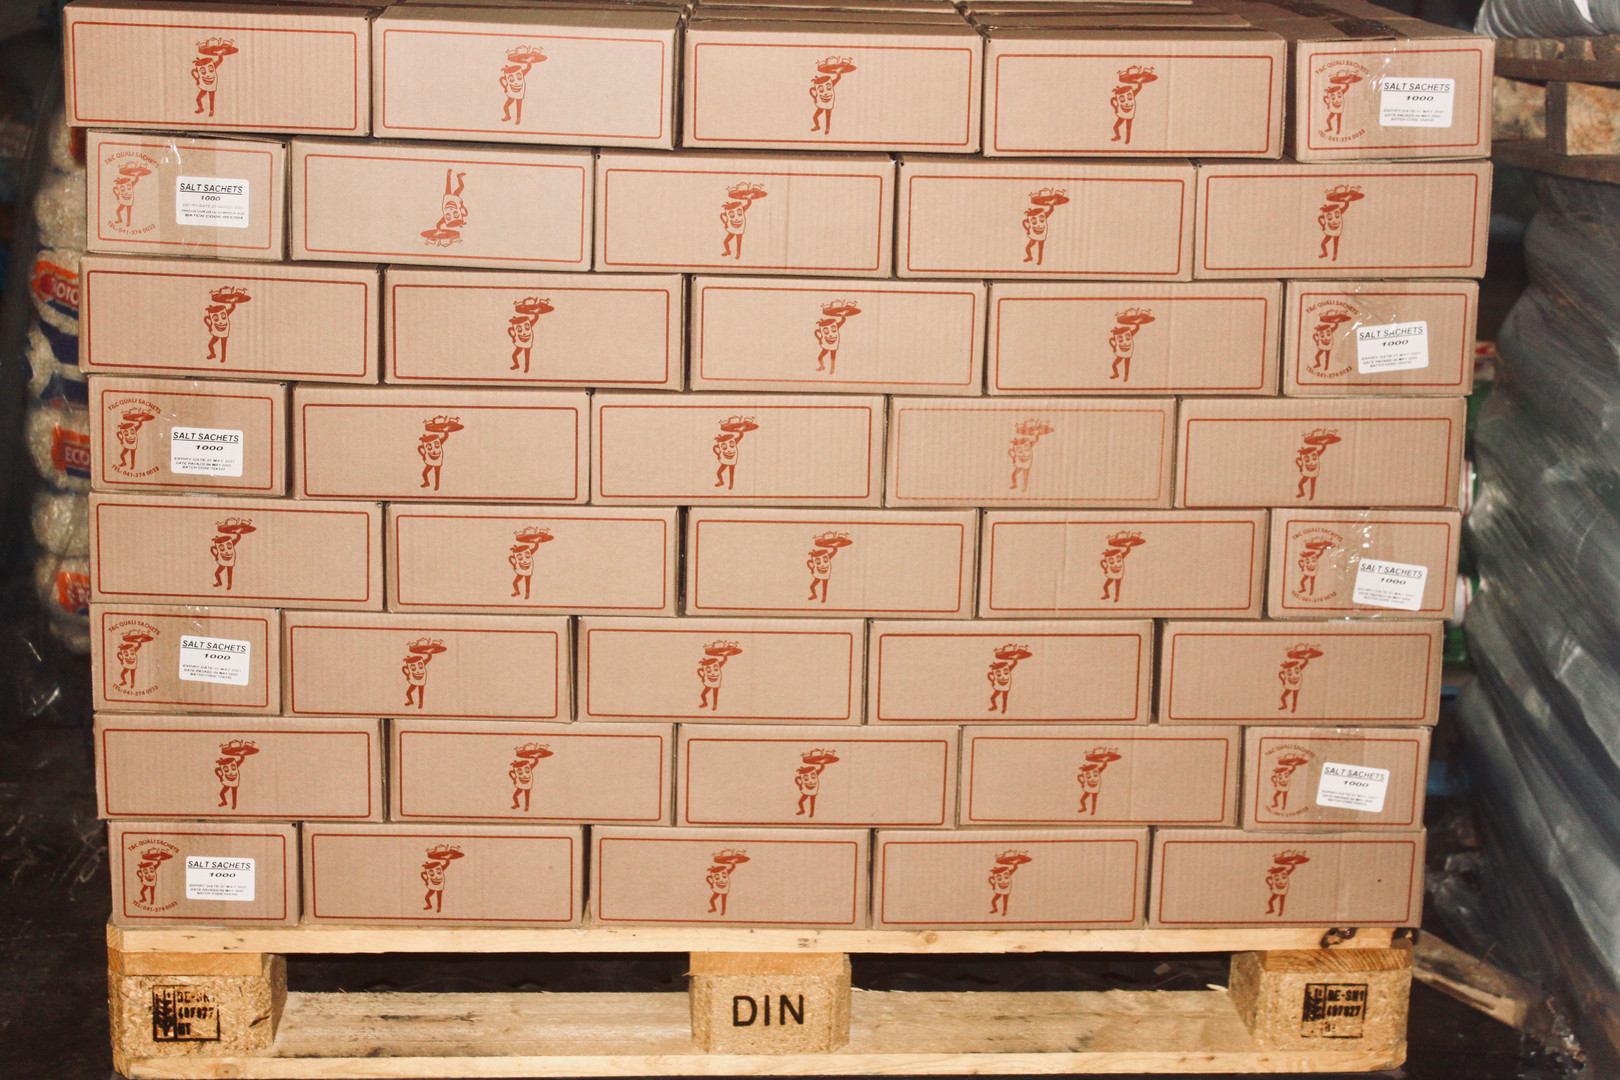 Tomato sauce in boxes